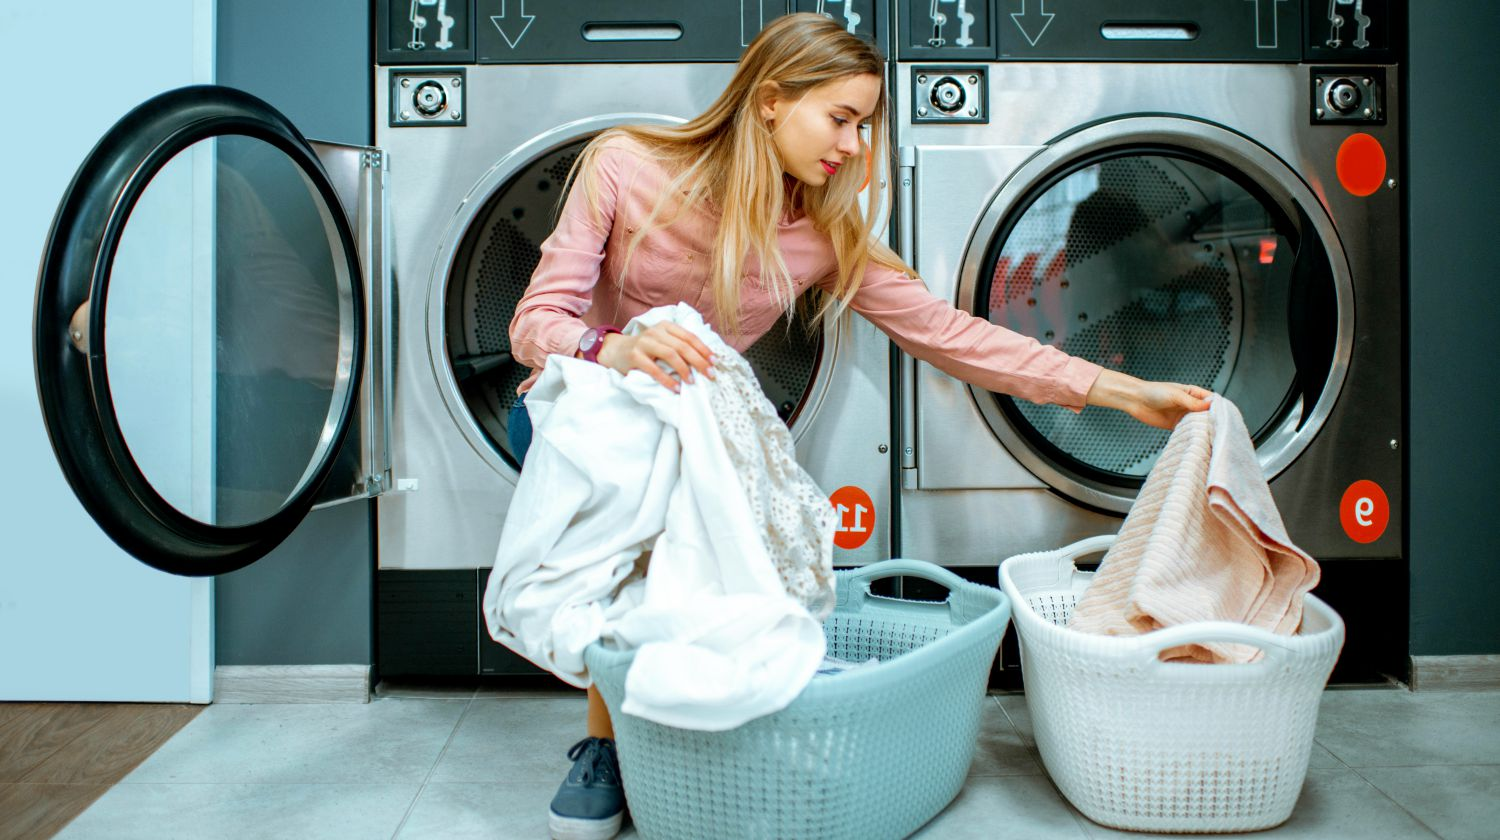 Featured | Types Of Fabric: How To Wash And Care For Your Towels, Robes, and Bathroom Textiles